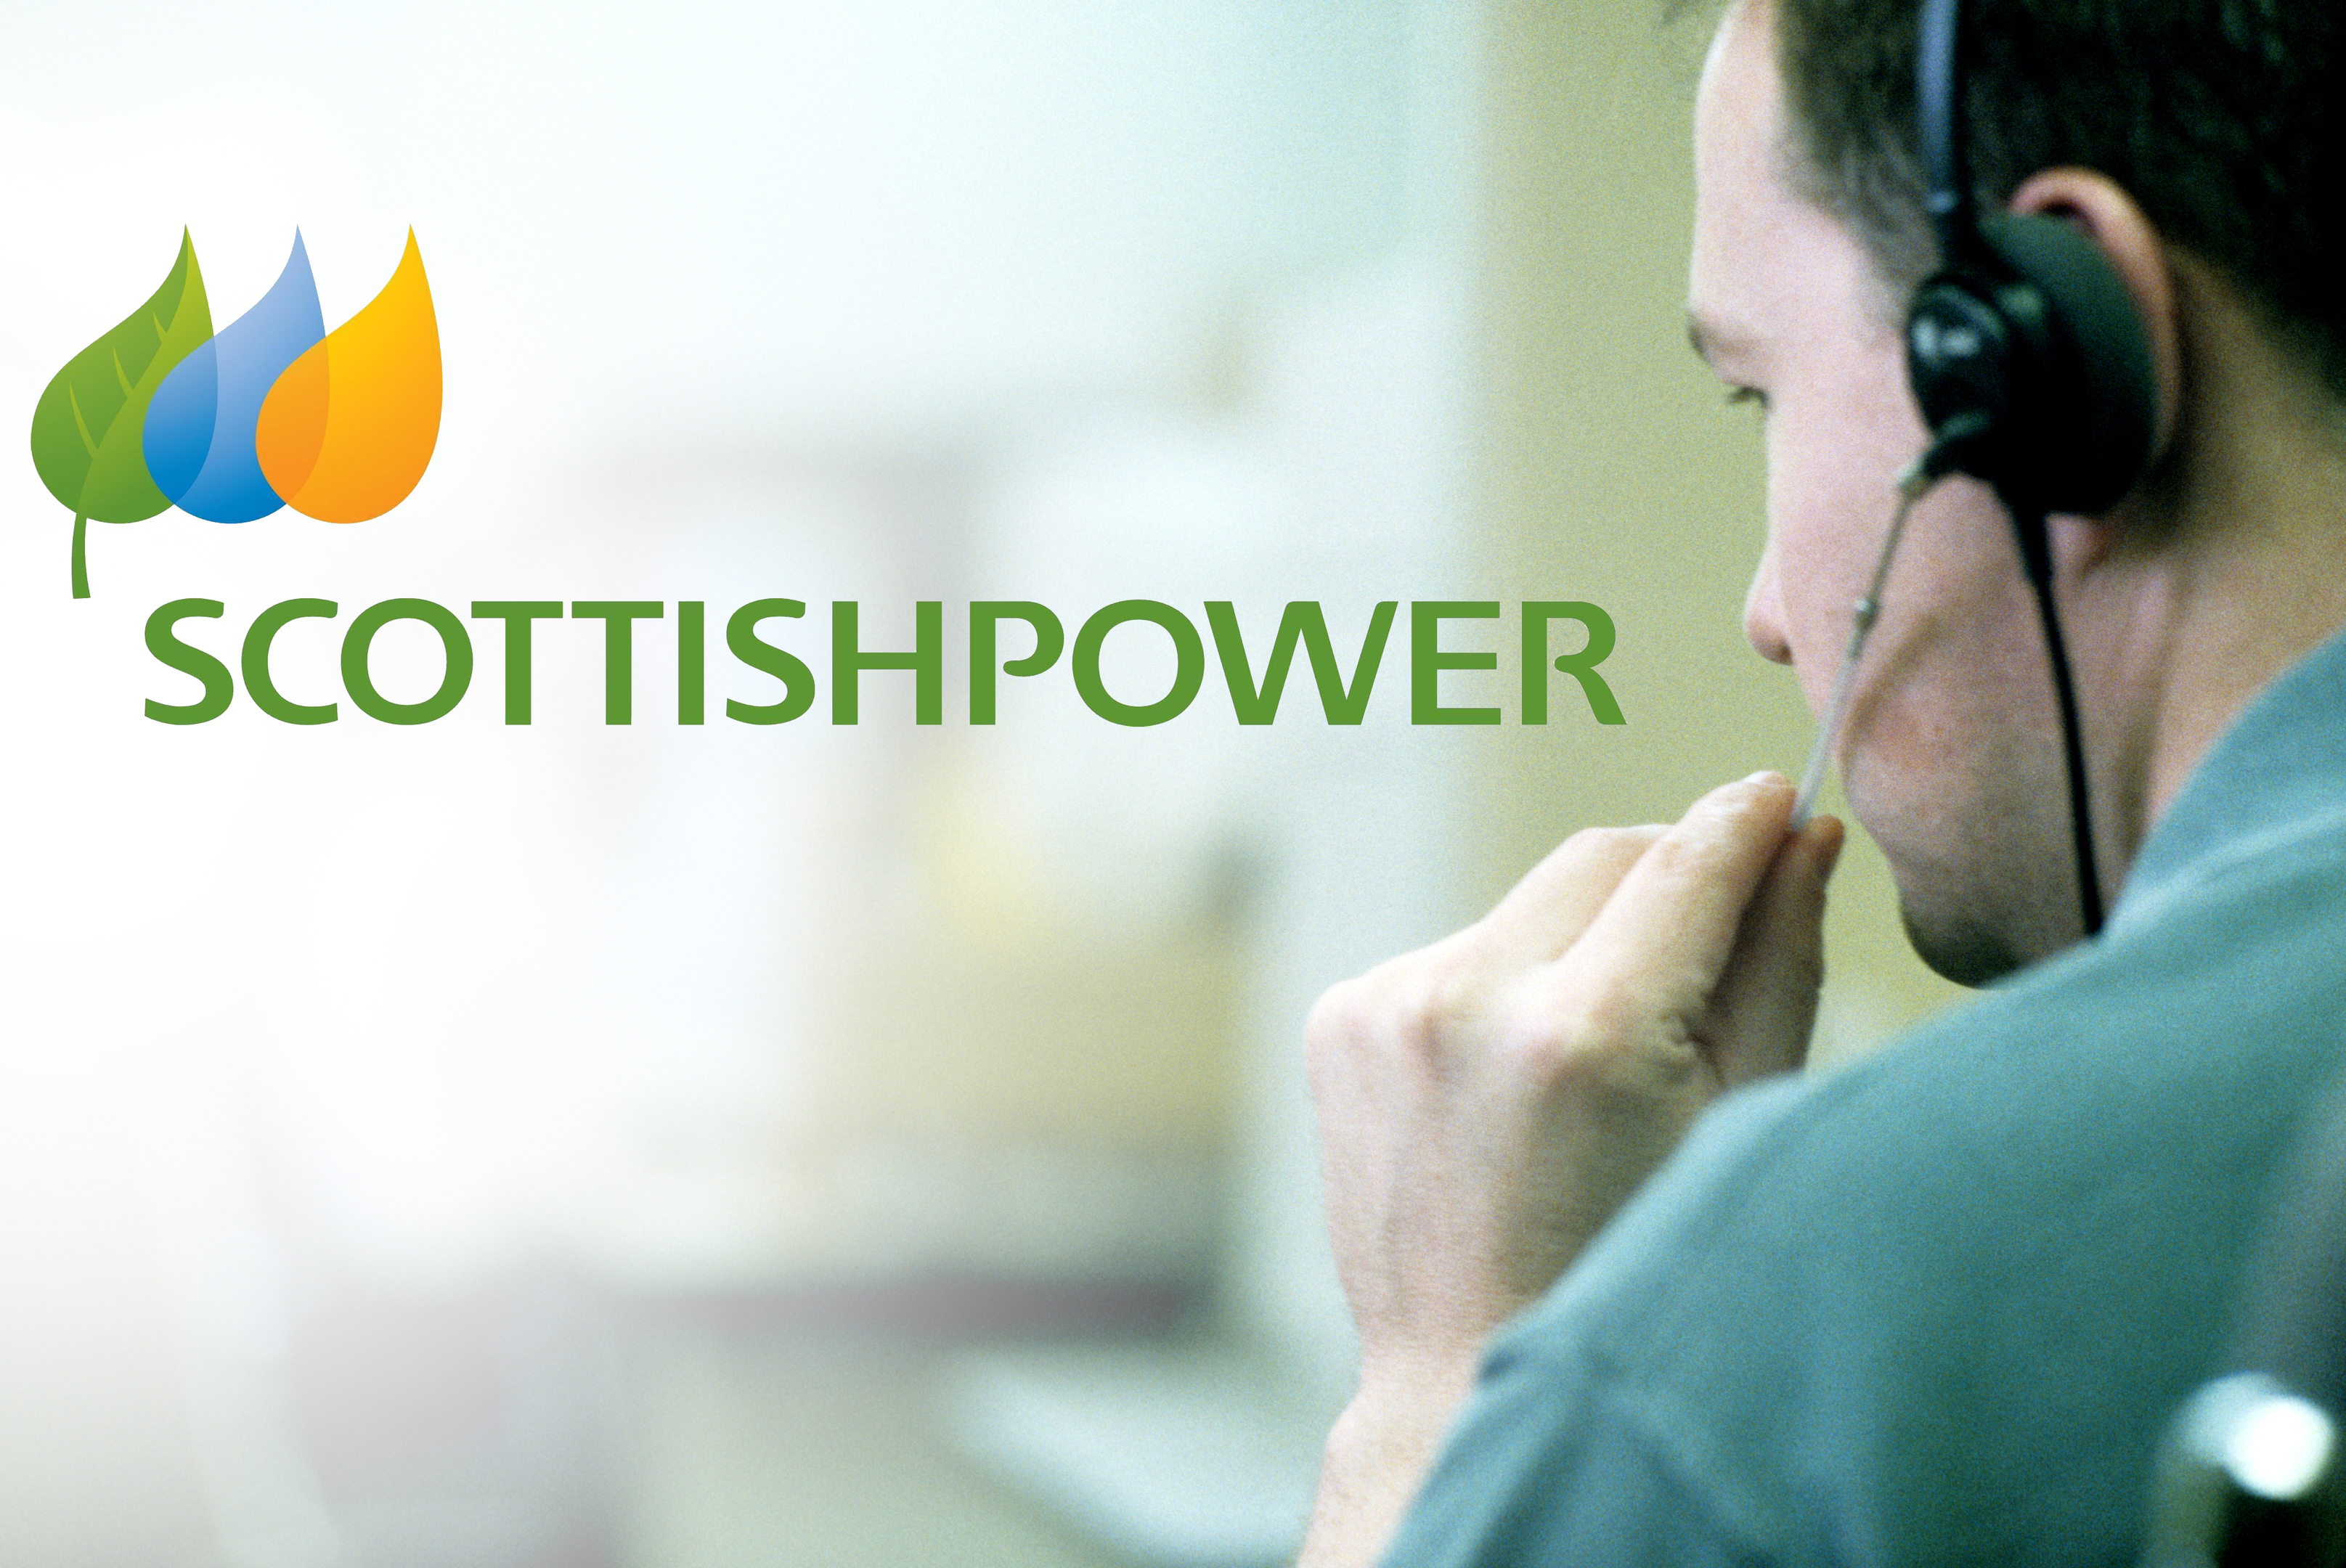 Scottish Power apologised to residents following the blackout.